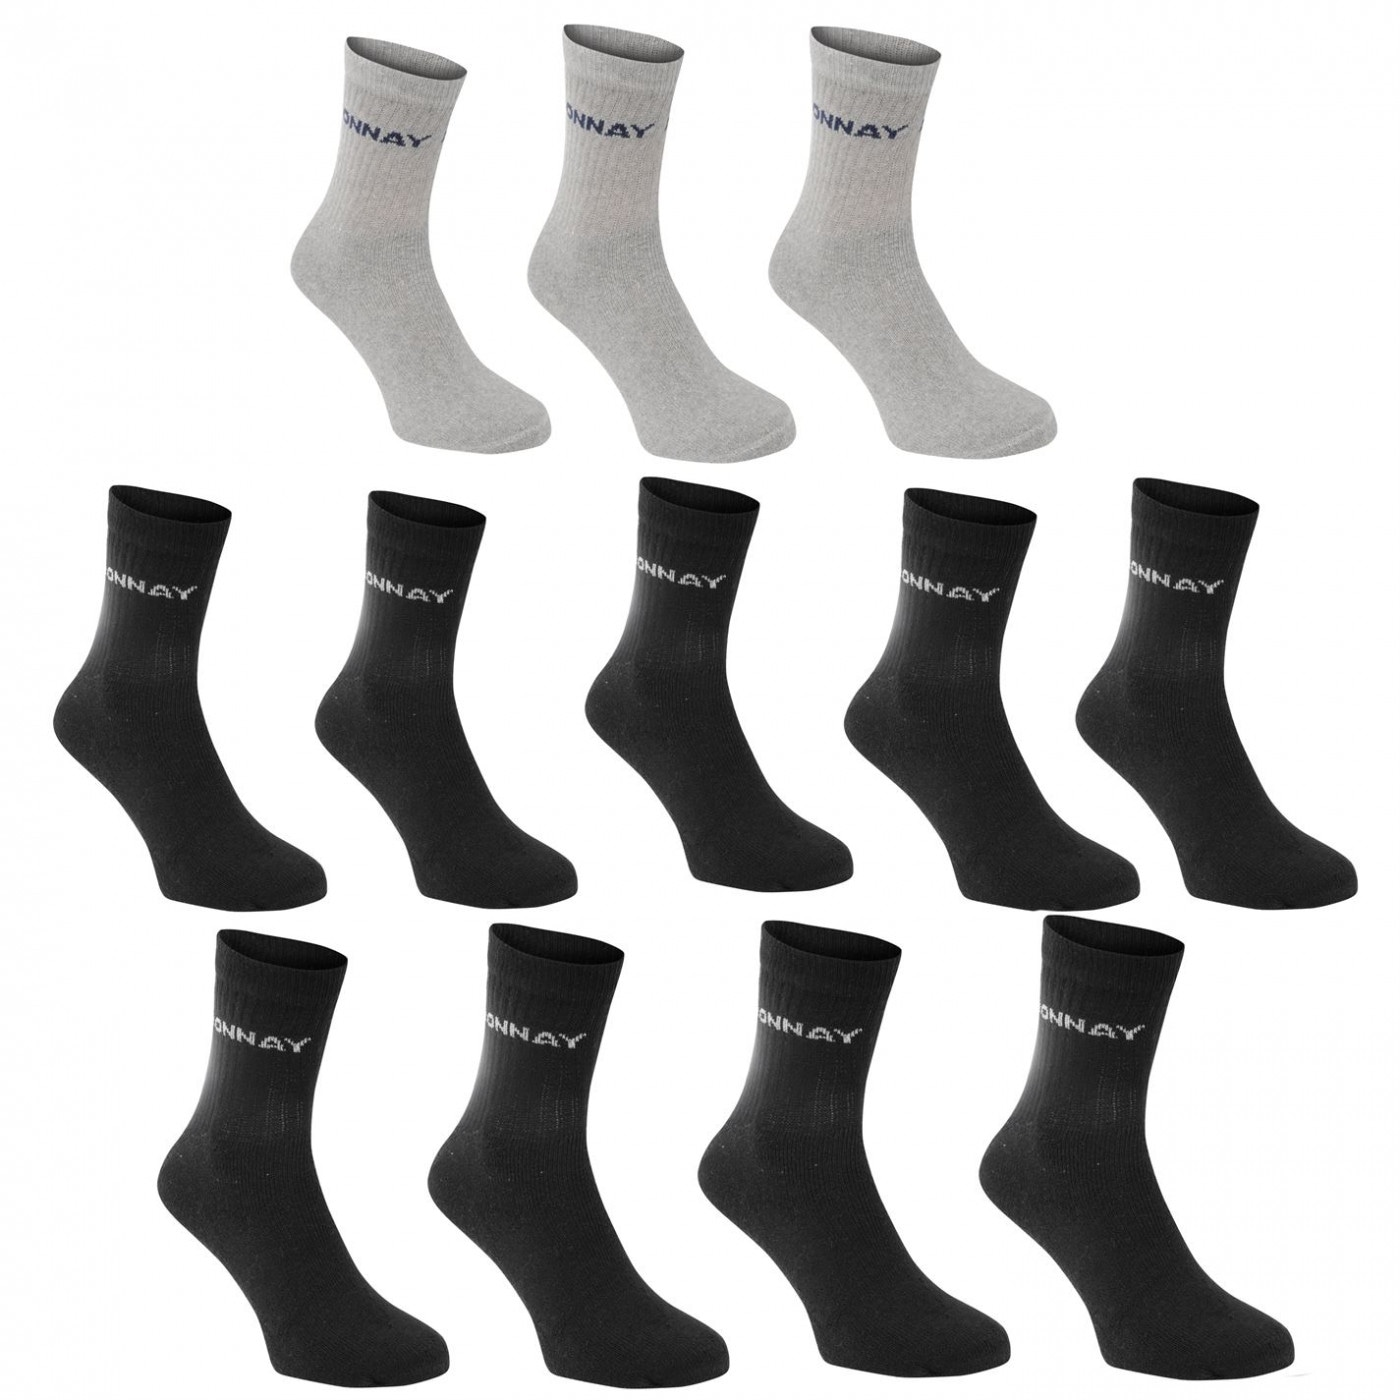 Donnay Crew Socks 12 Pack Mens Plus